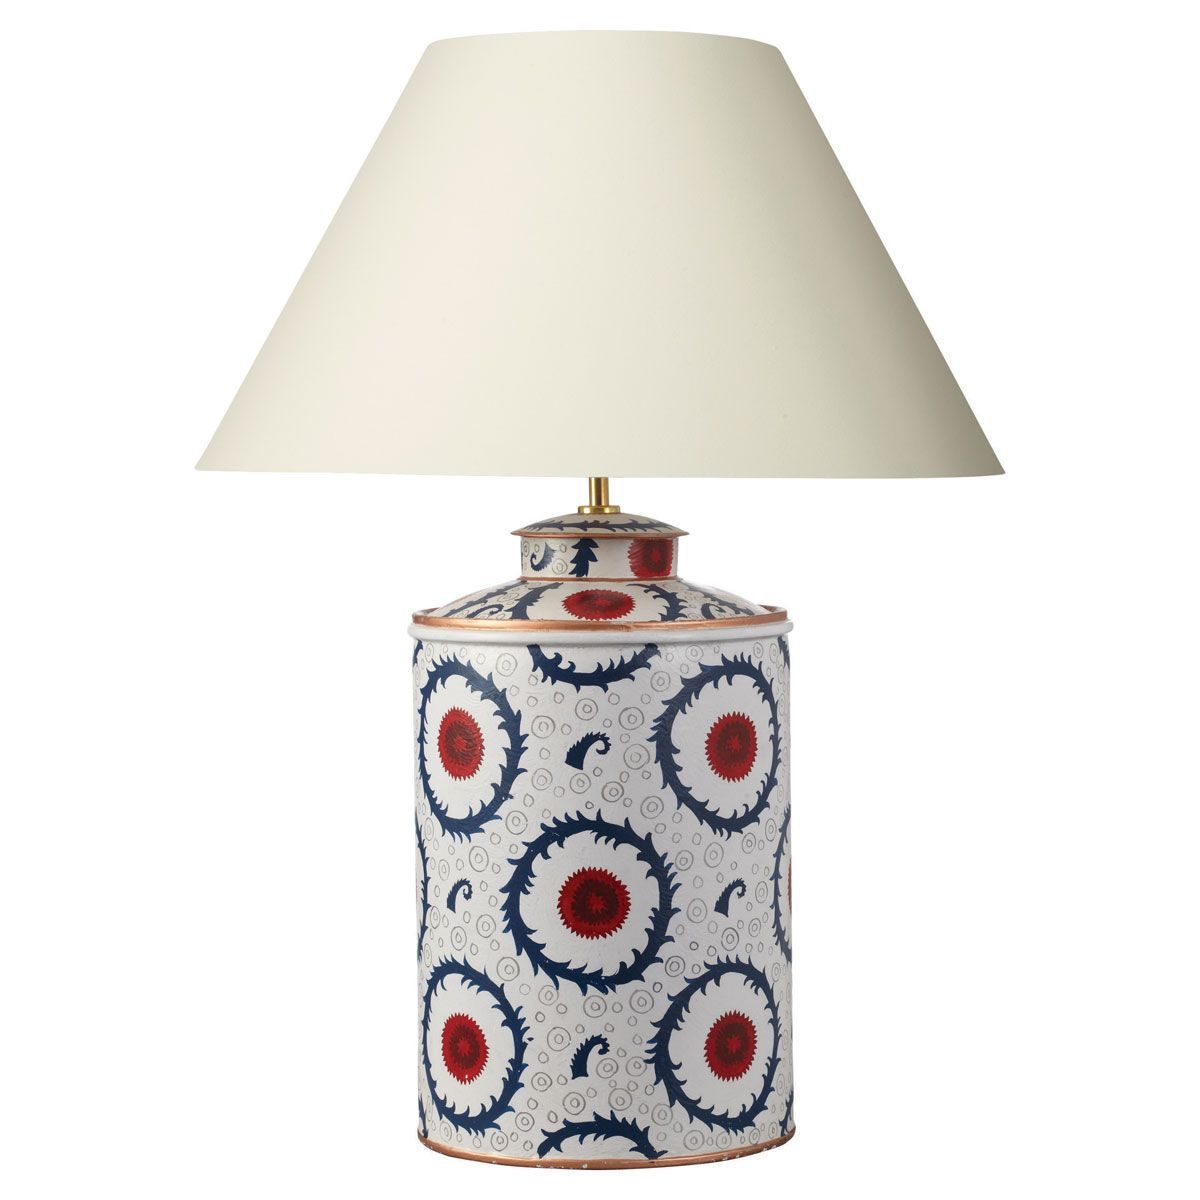 Lakai handpainted table lamp large table lamps tables and lamps lakai handpainted table lamp large geotapseo Gallery